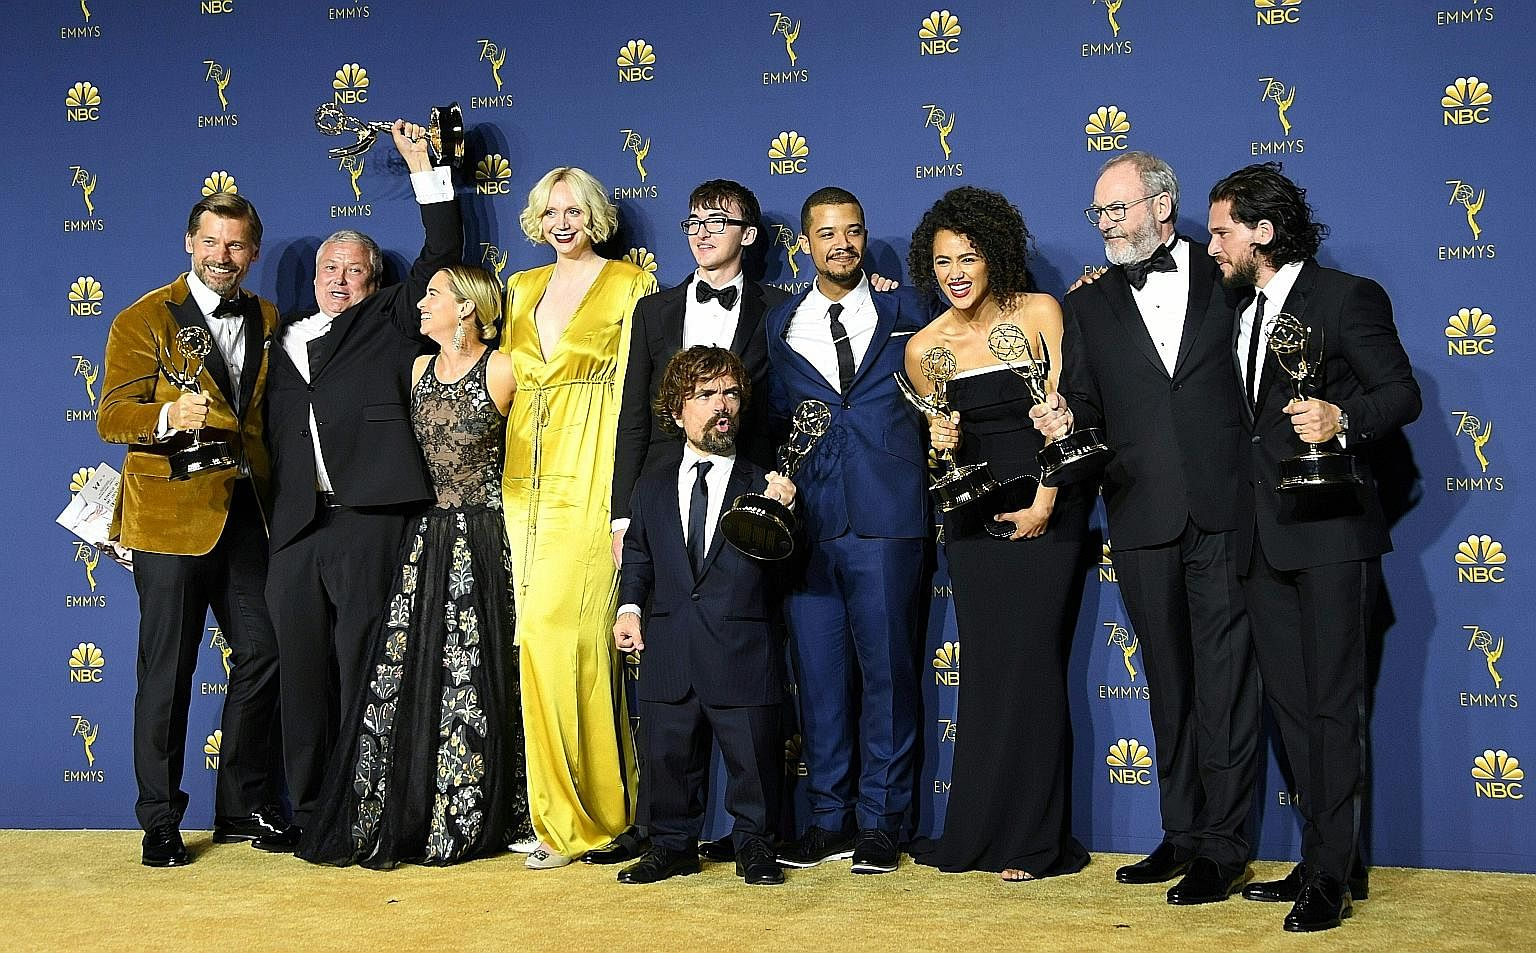 The Game Of Thrones cast posing with their awards haul at last year's Emmy Awards in Los Angeles.